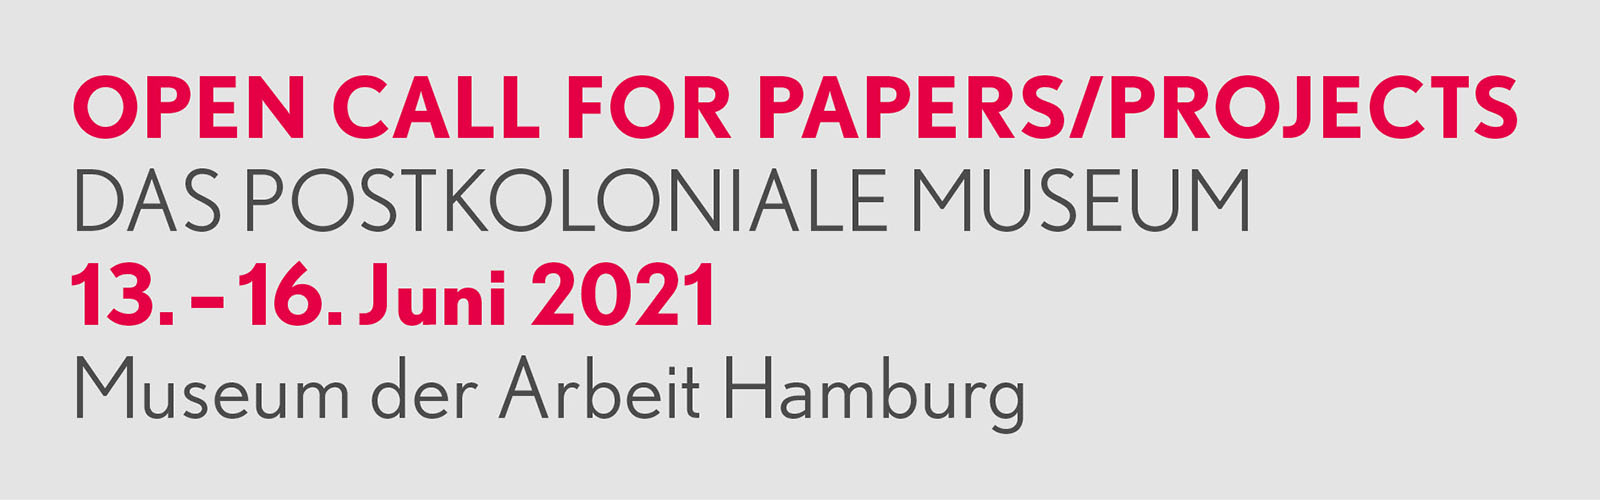 open call for papers and projects: das postkoloniale Museum